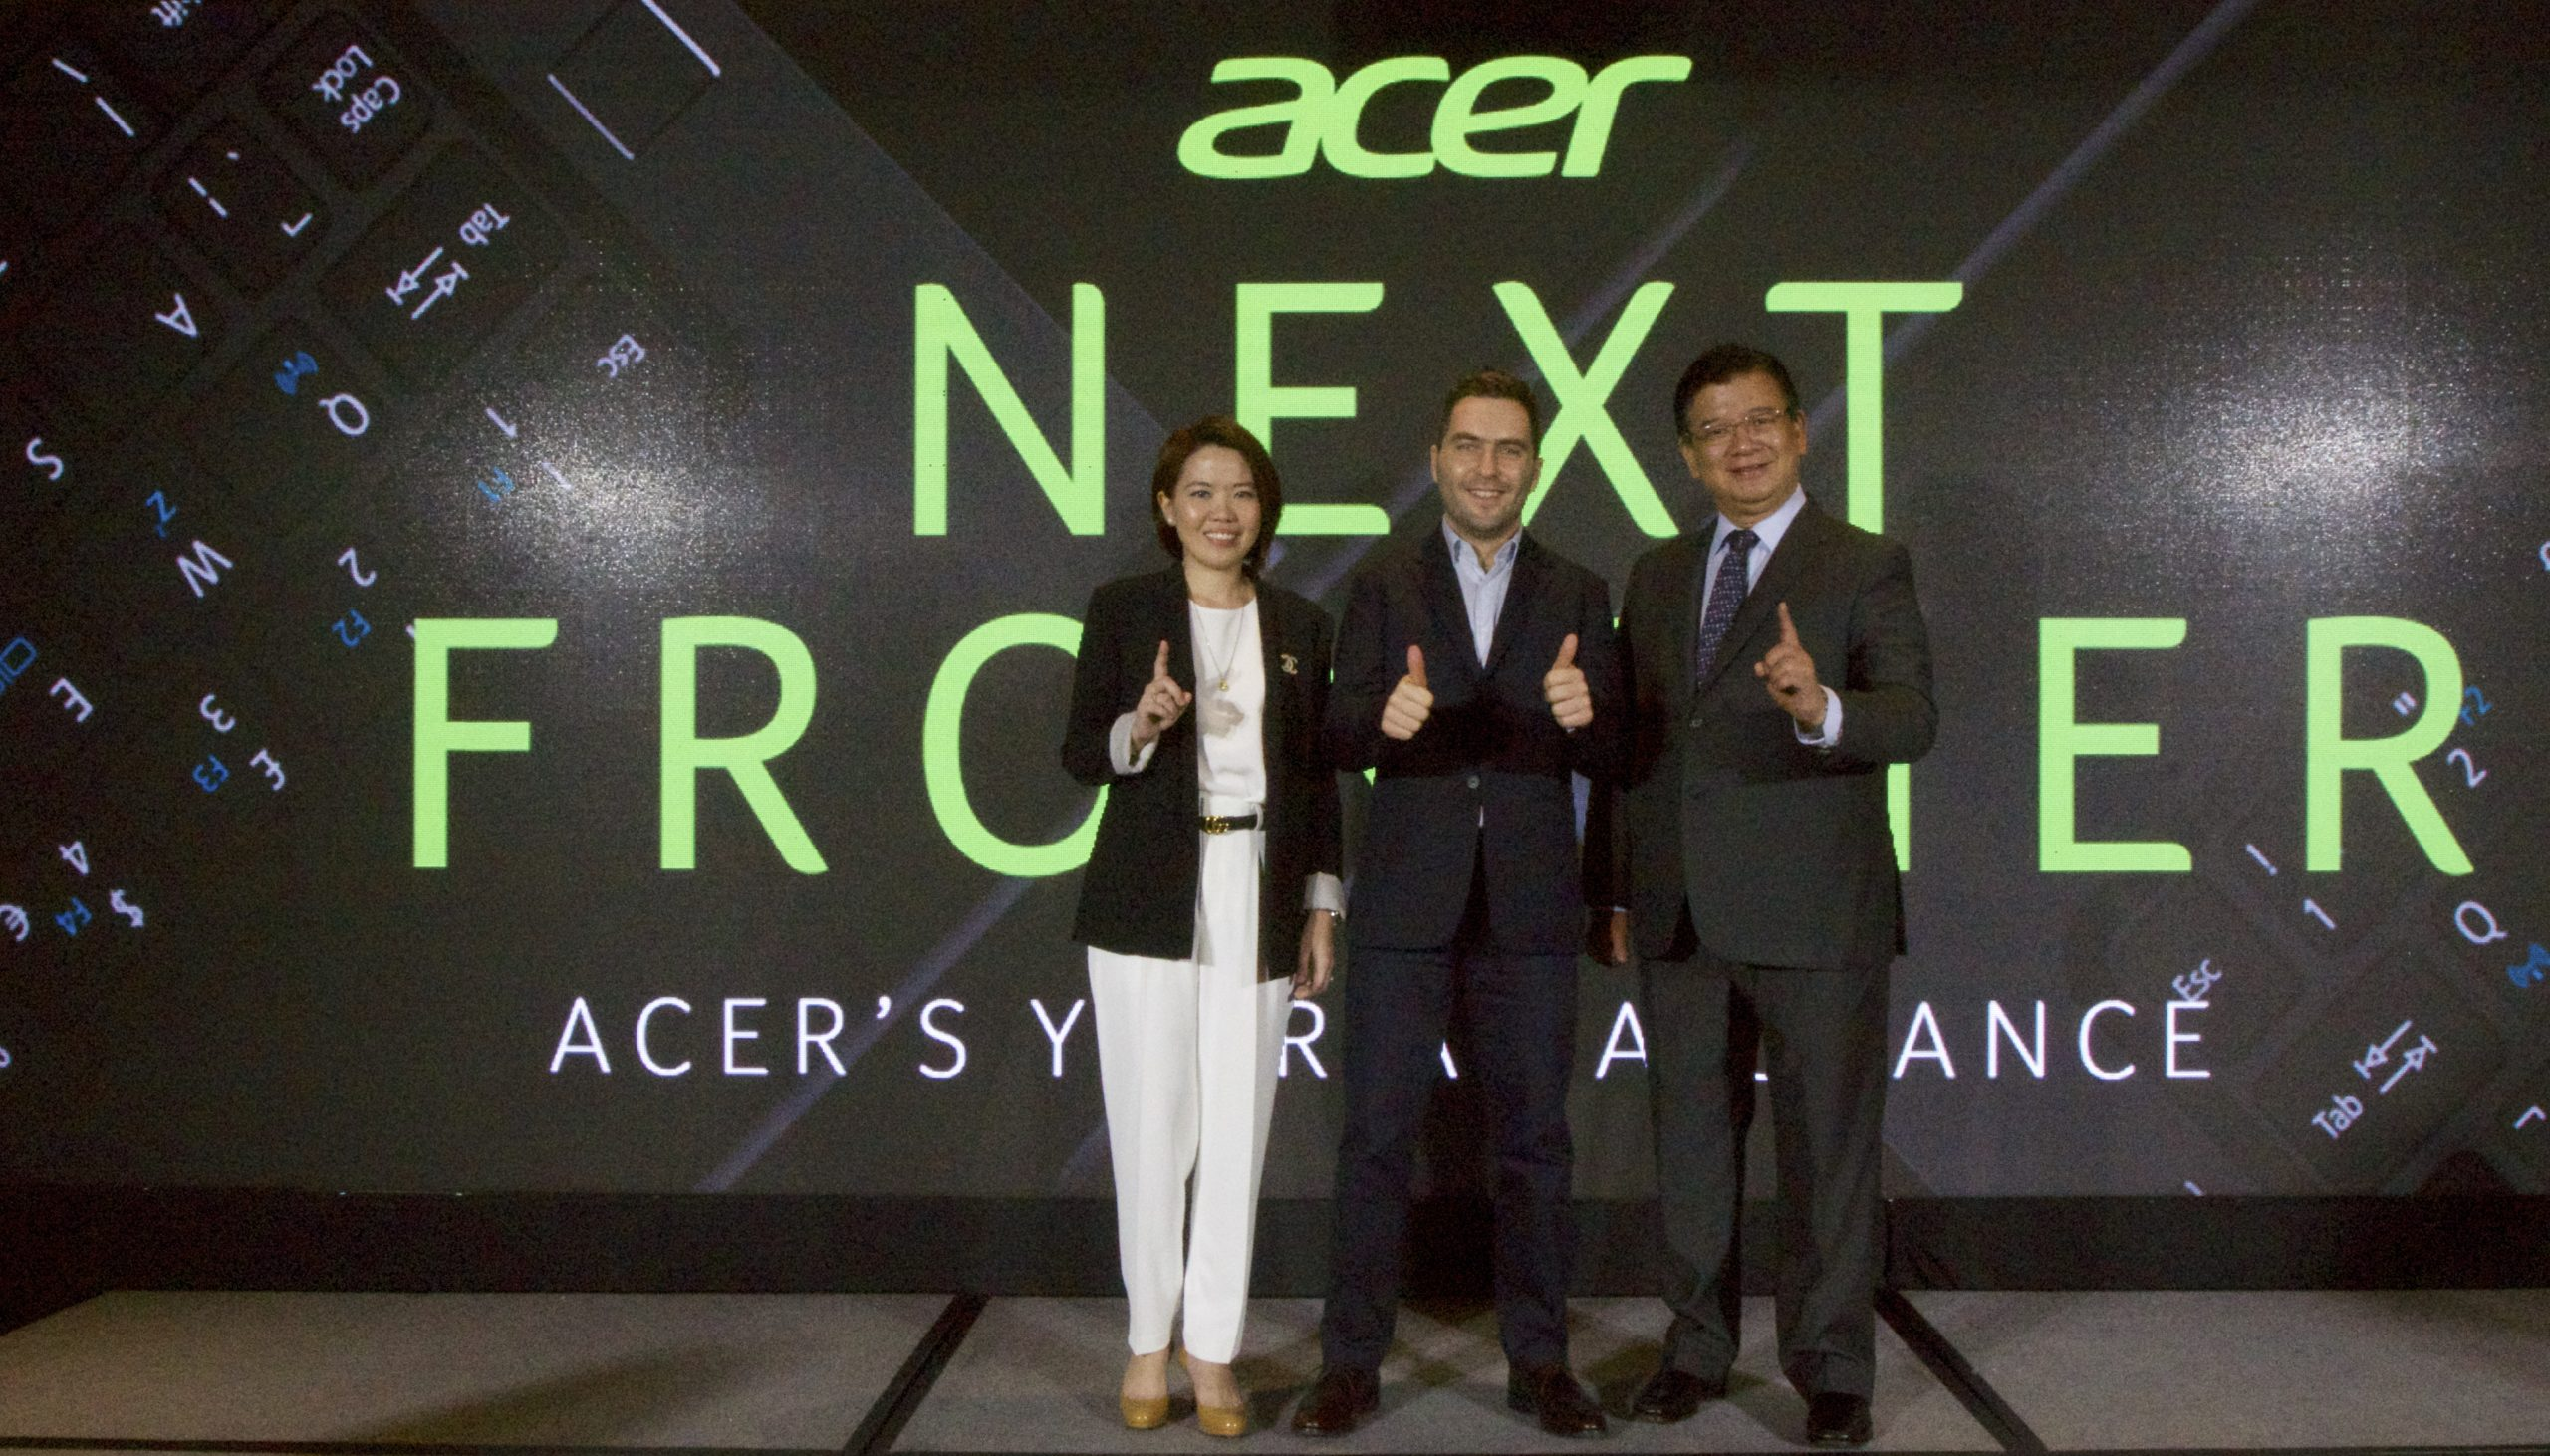 Acer Philippines dominates the PC market for 10 years, maintains No. 1 spot in the country